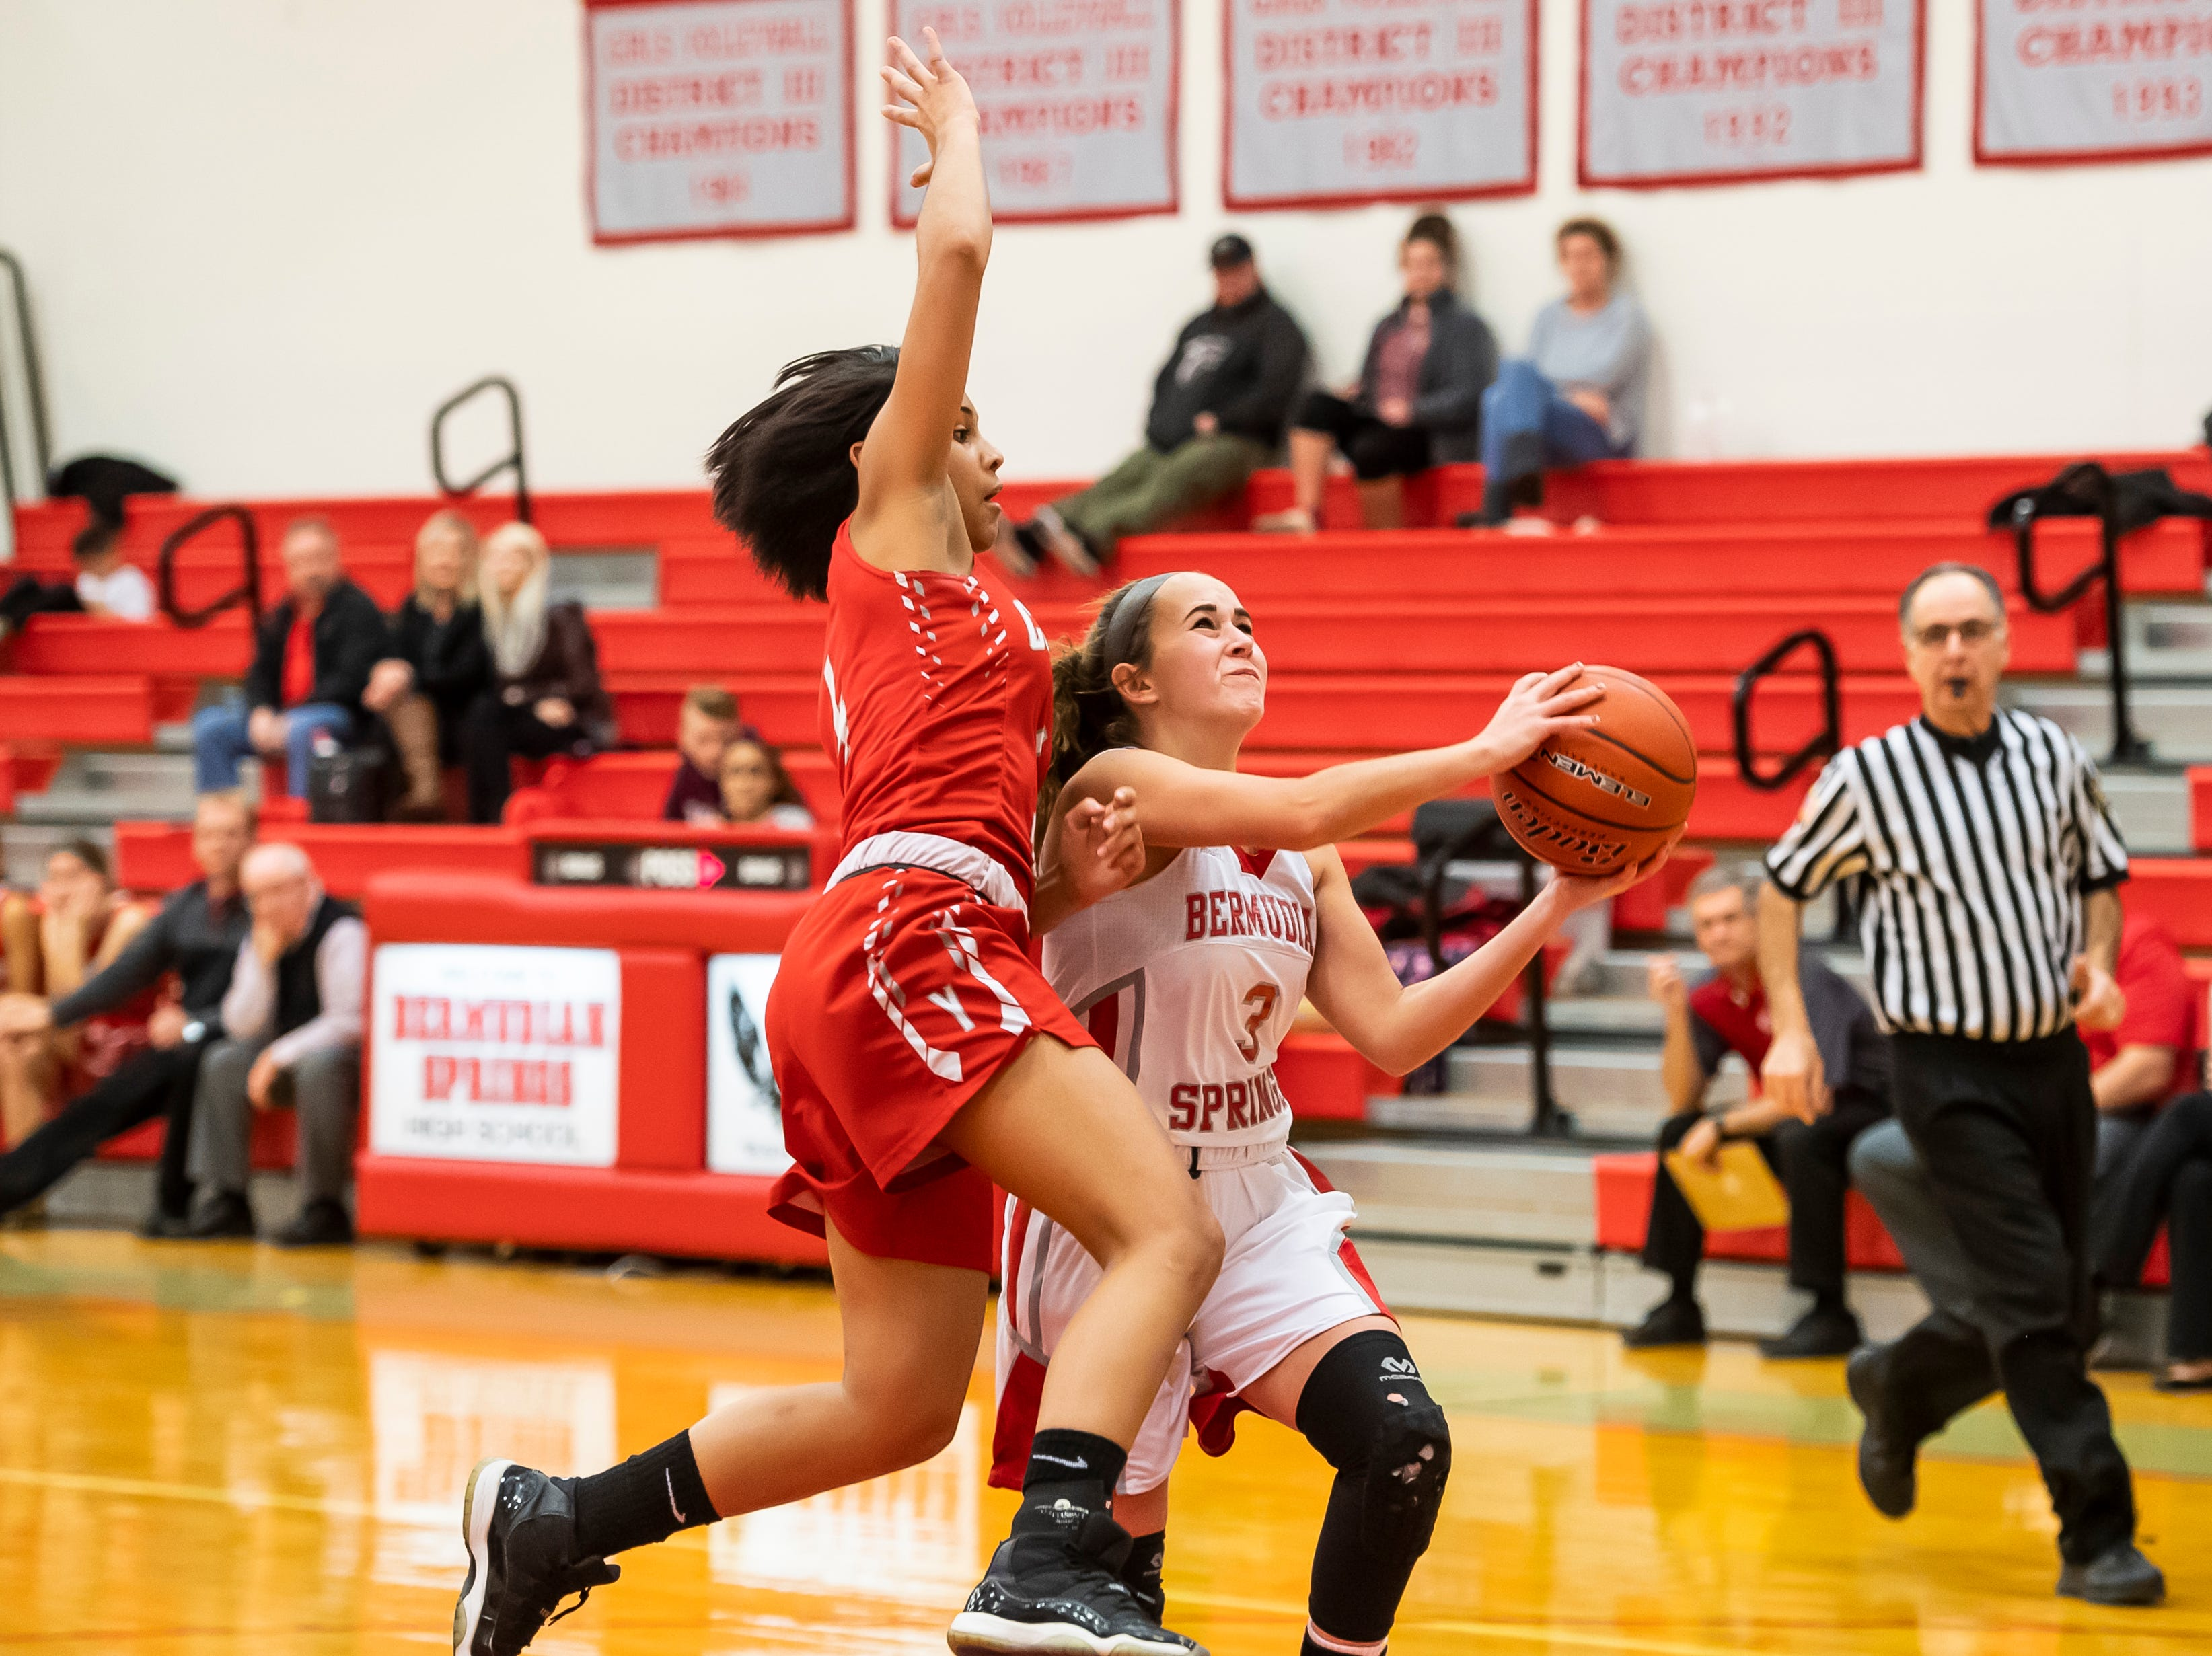 Bermudian Springs' Skyler West is fouled by York Country Day School's Infinity Morris while attempting a layup at Bermudian Springs High School on Monday, January 14, 2019. The Eagles won 59-20.